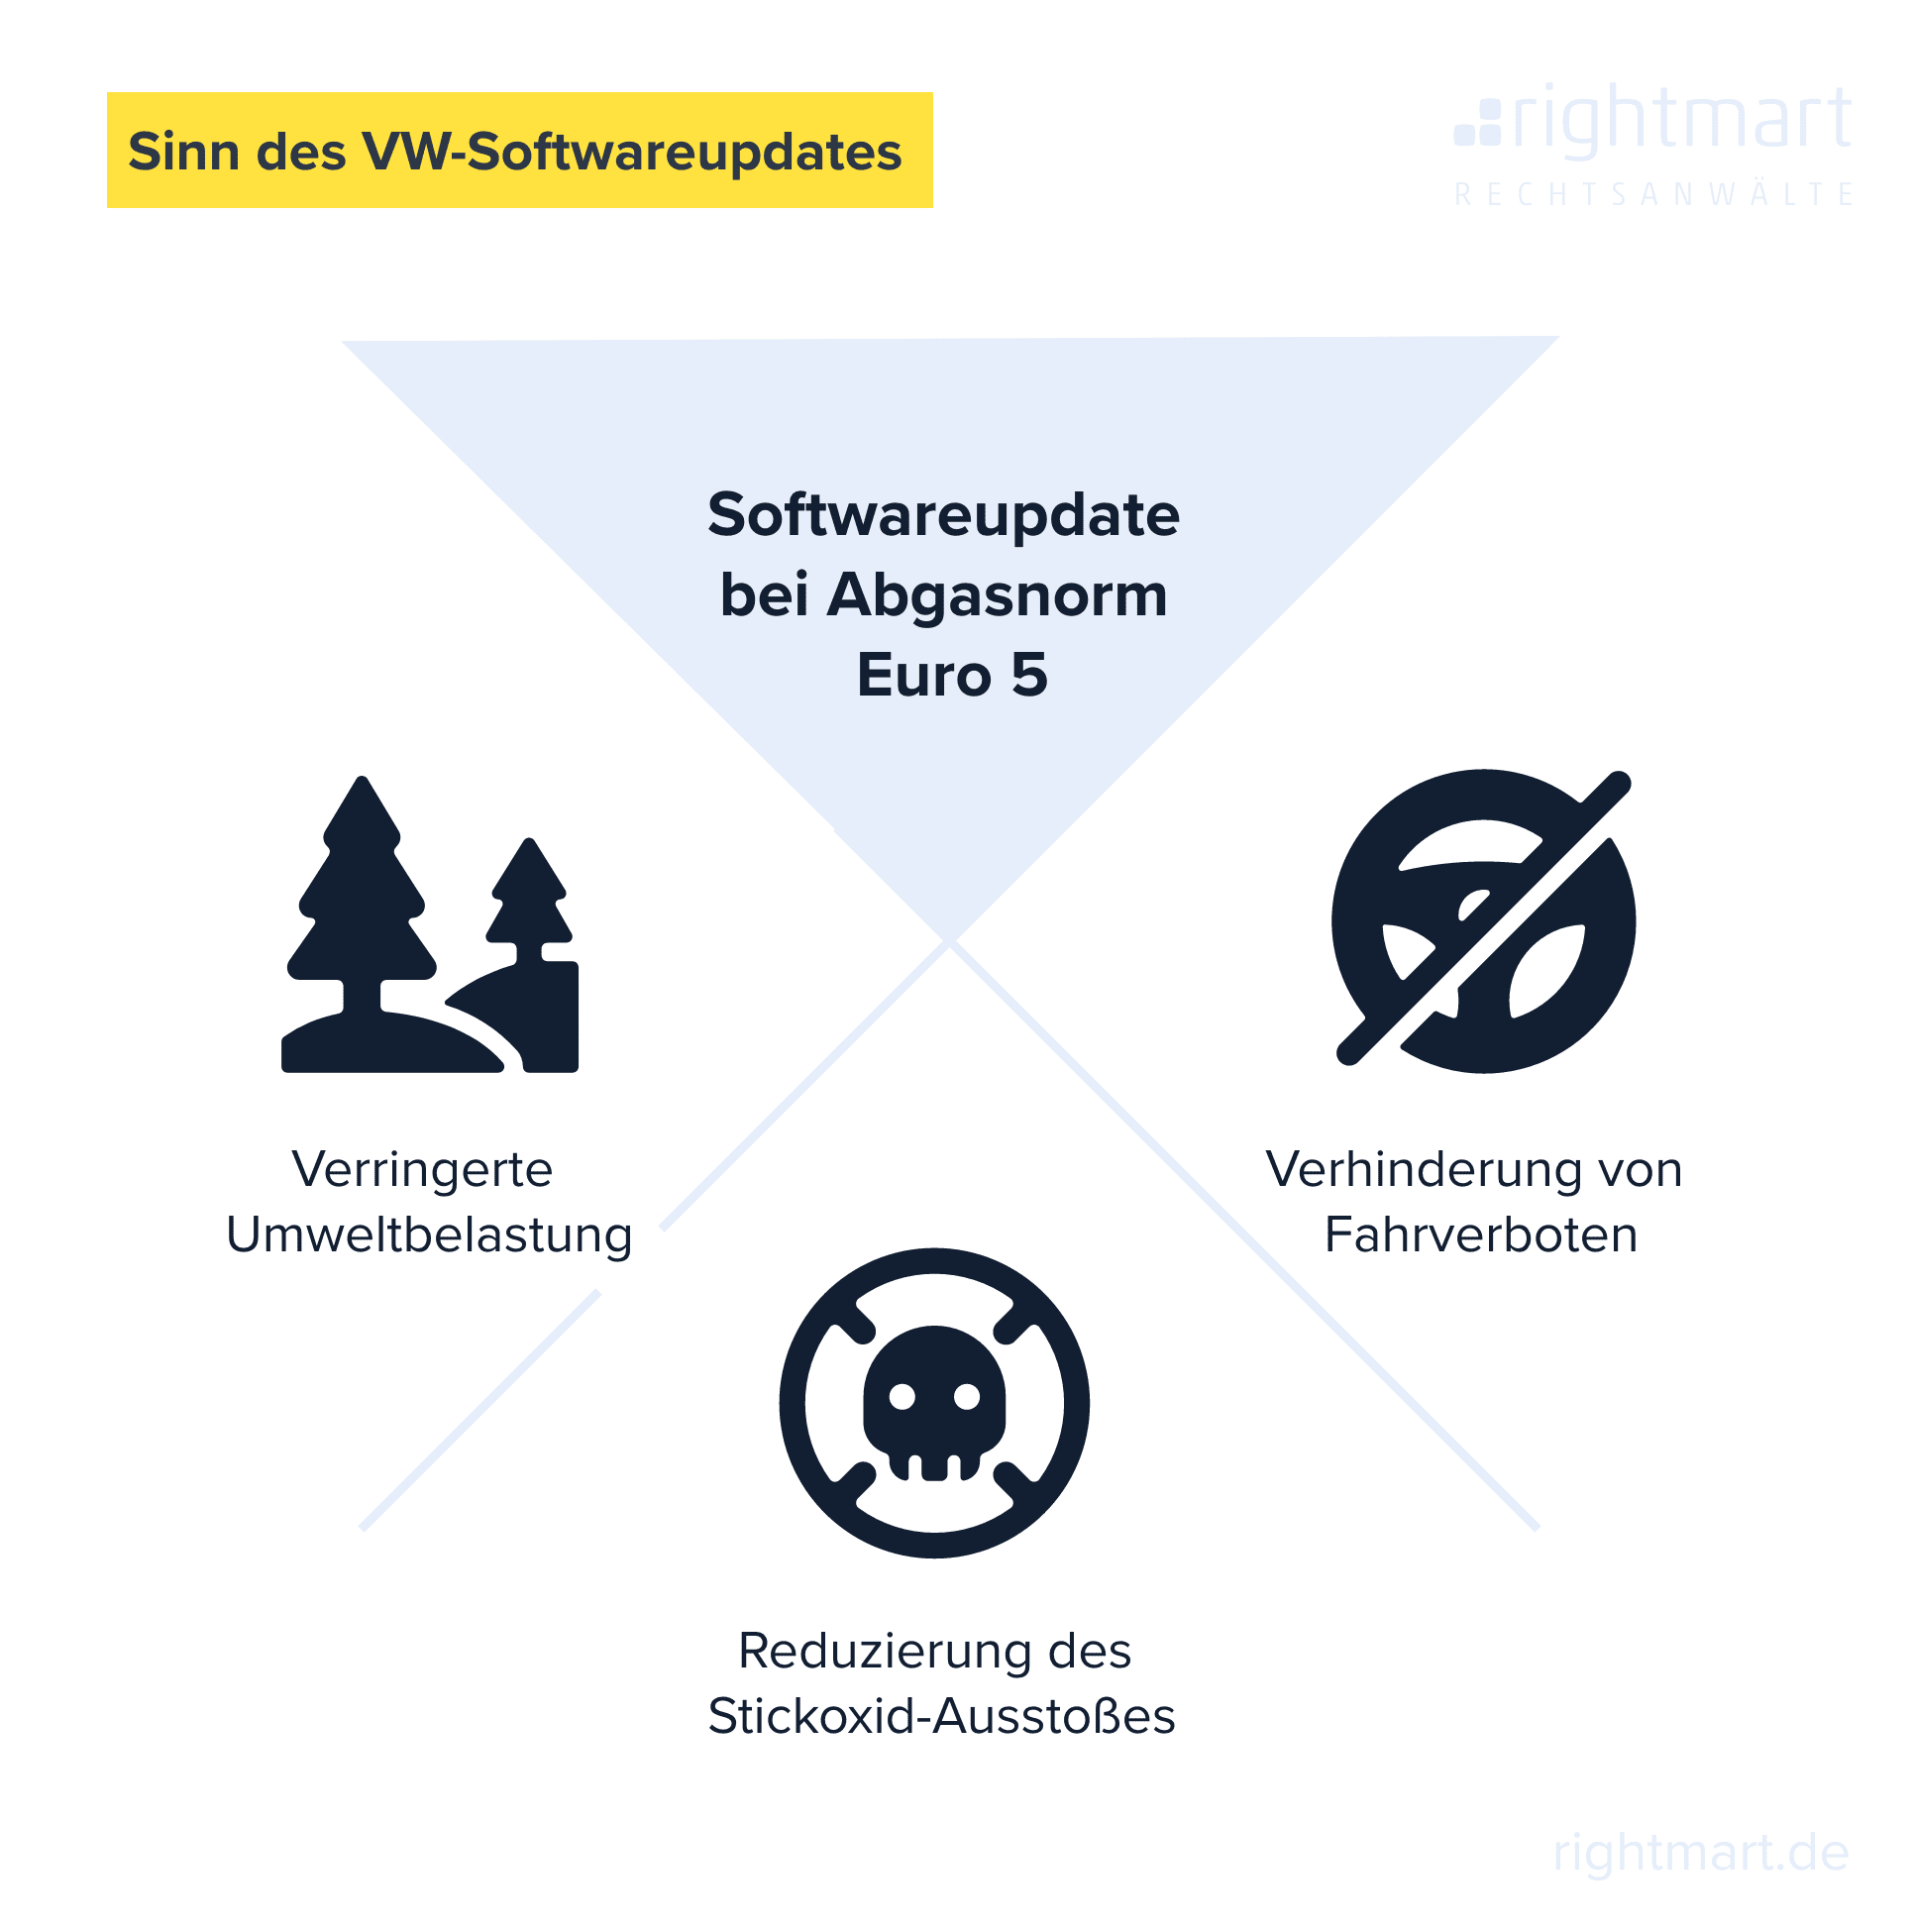 Sinn des VW-Softwareupdates